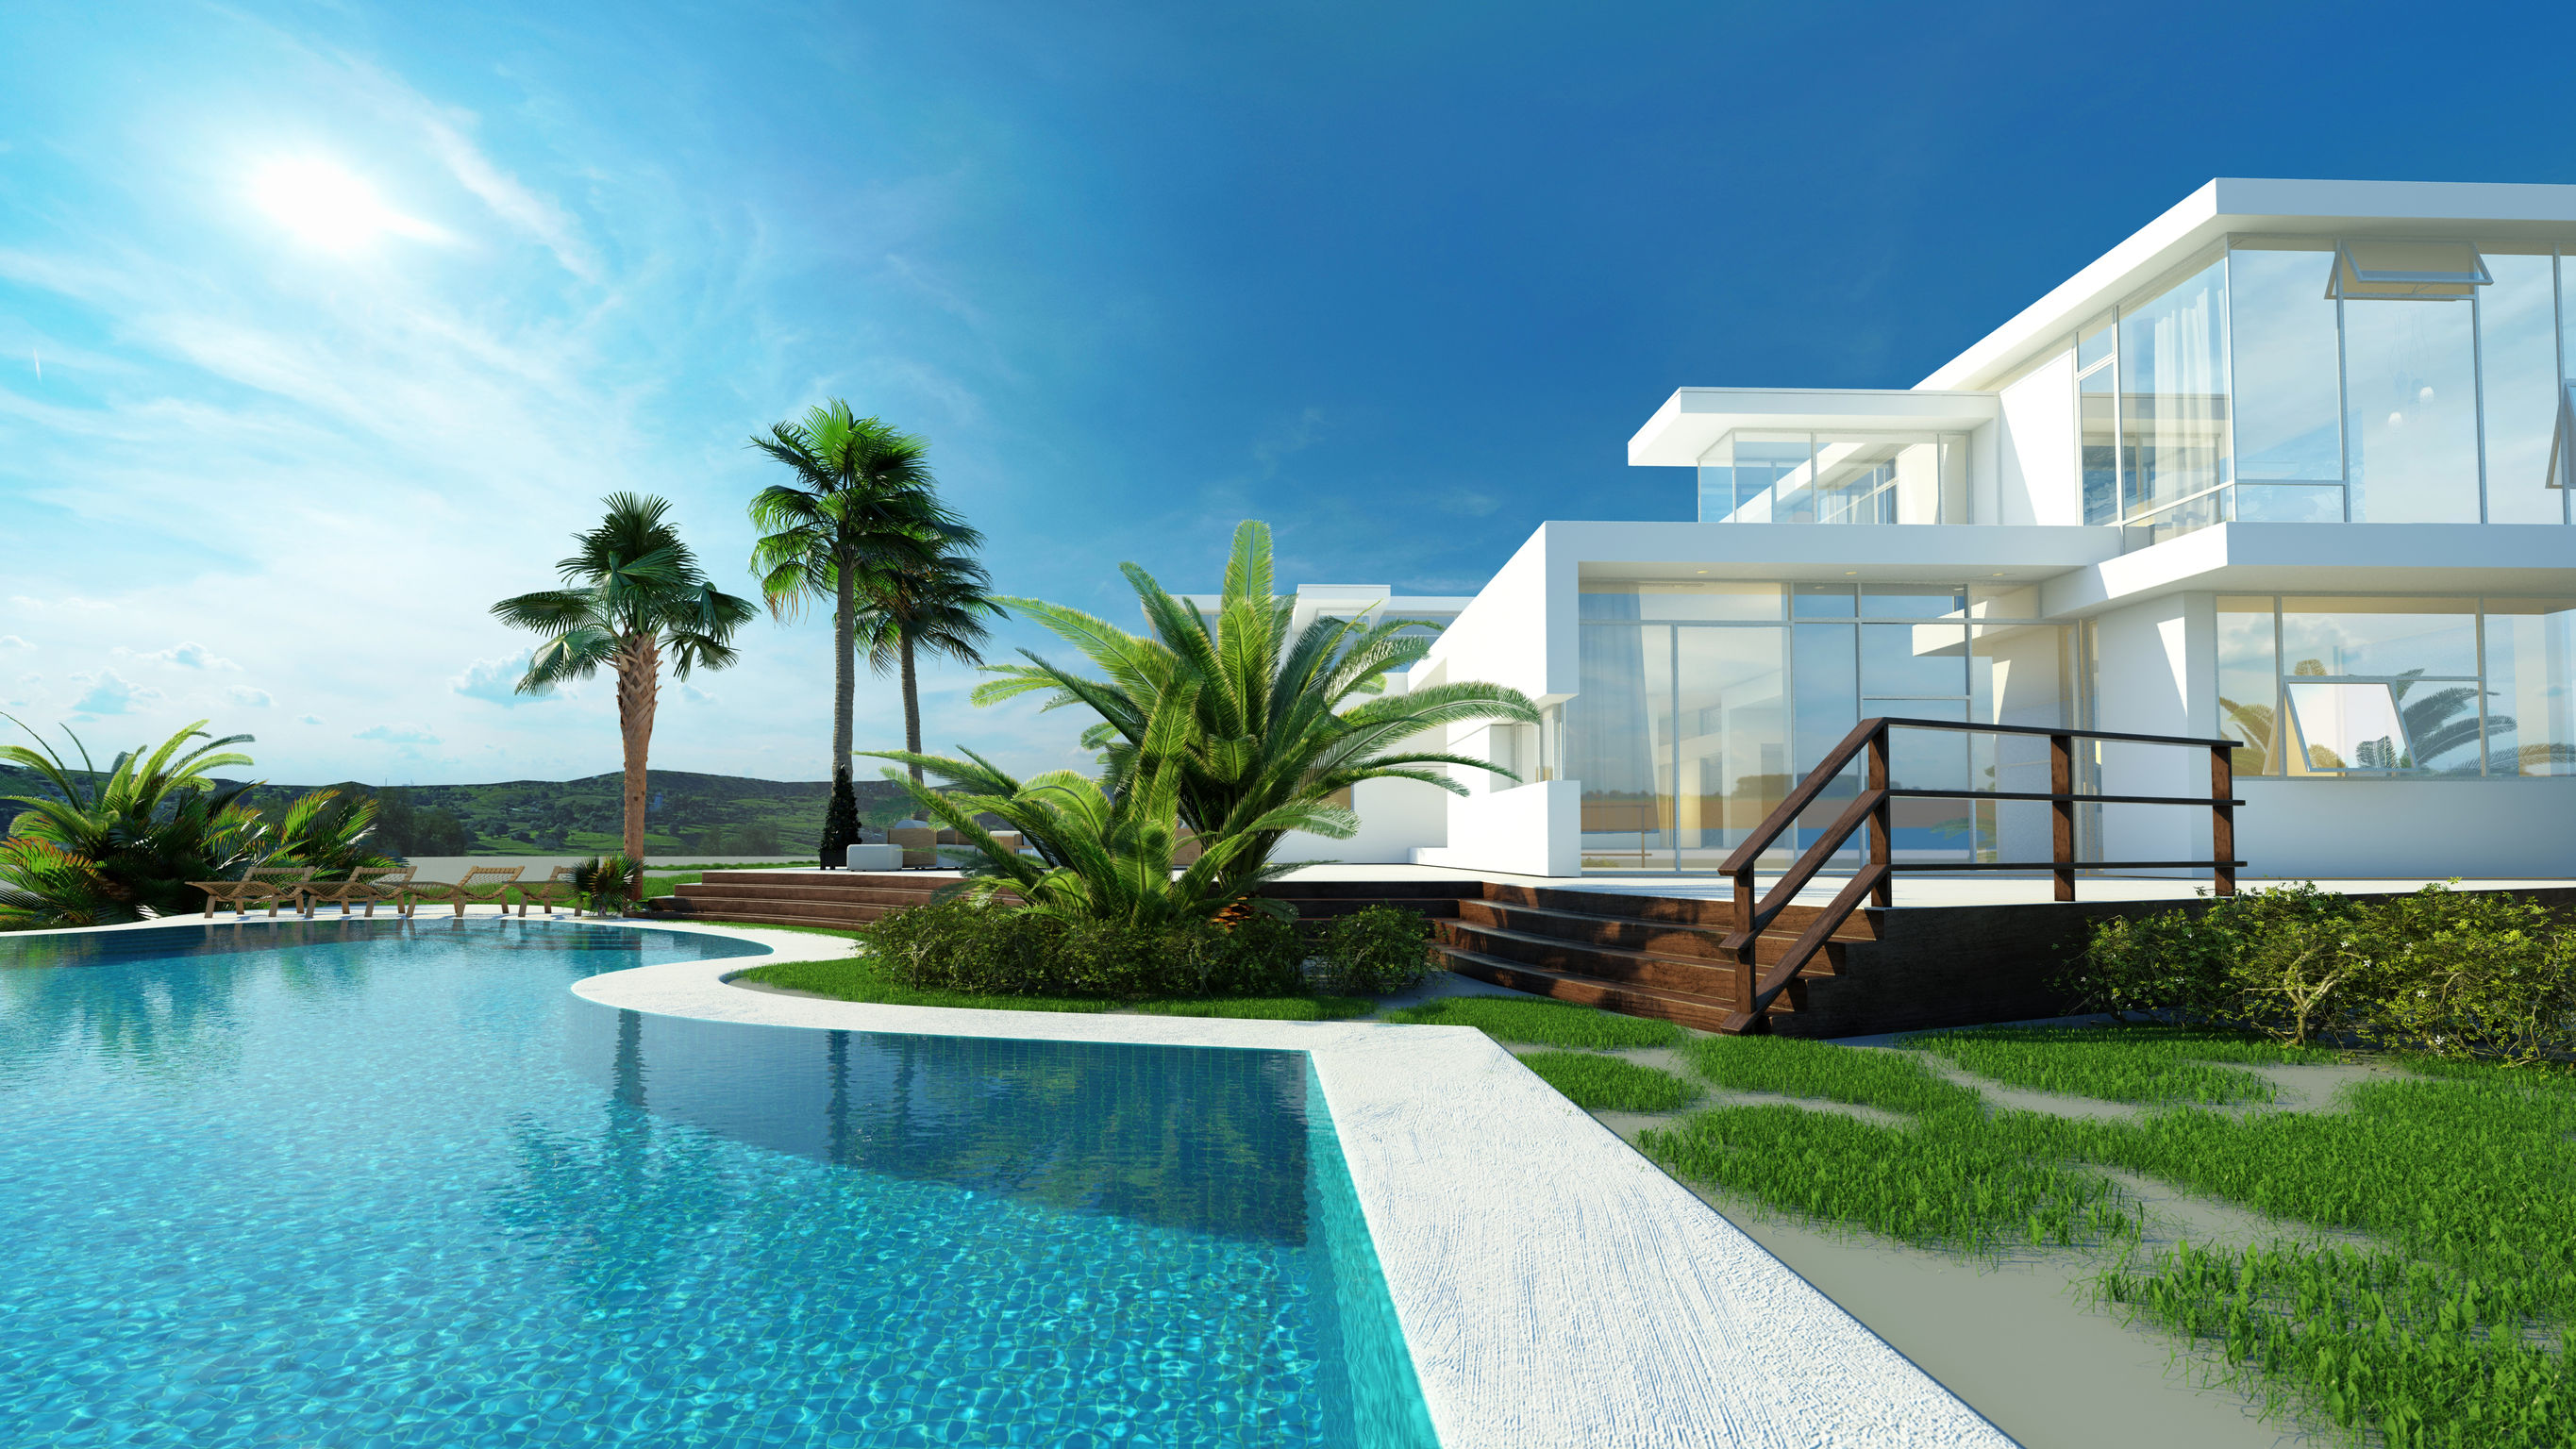 Swimming Pools Add Value To South Florida Homes When Well Maintained And Safe